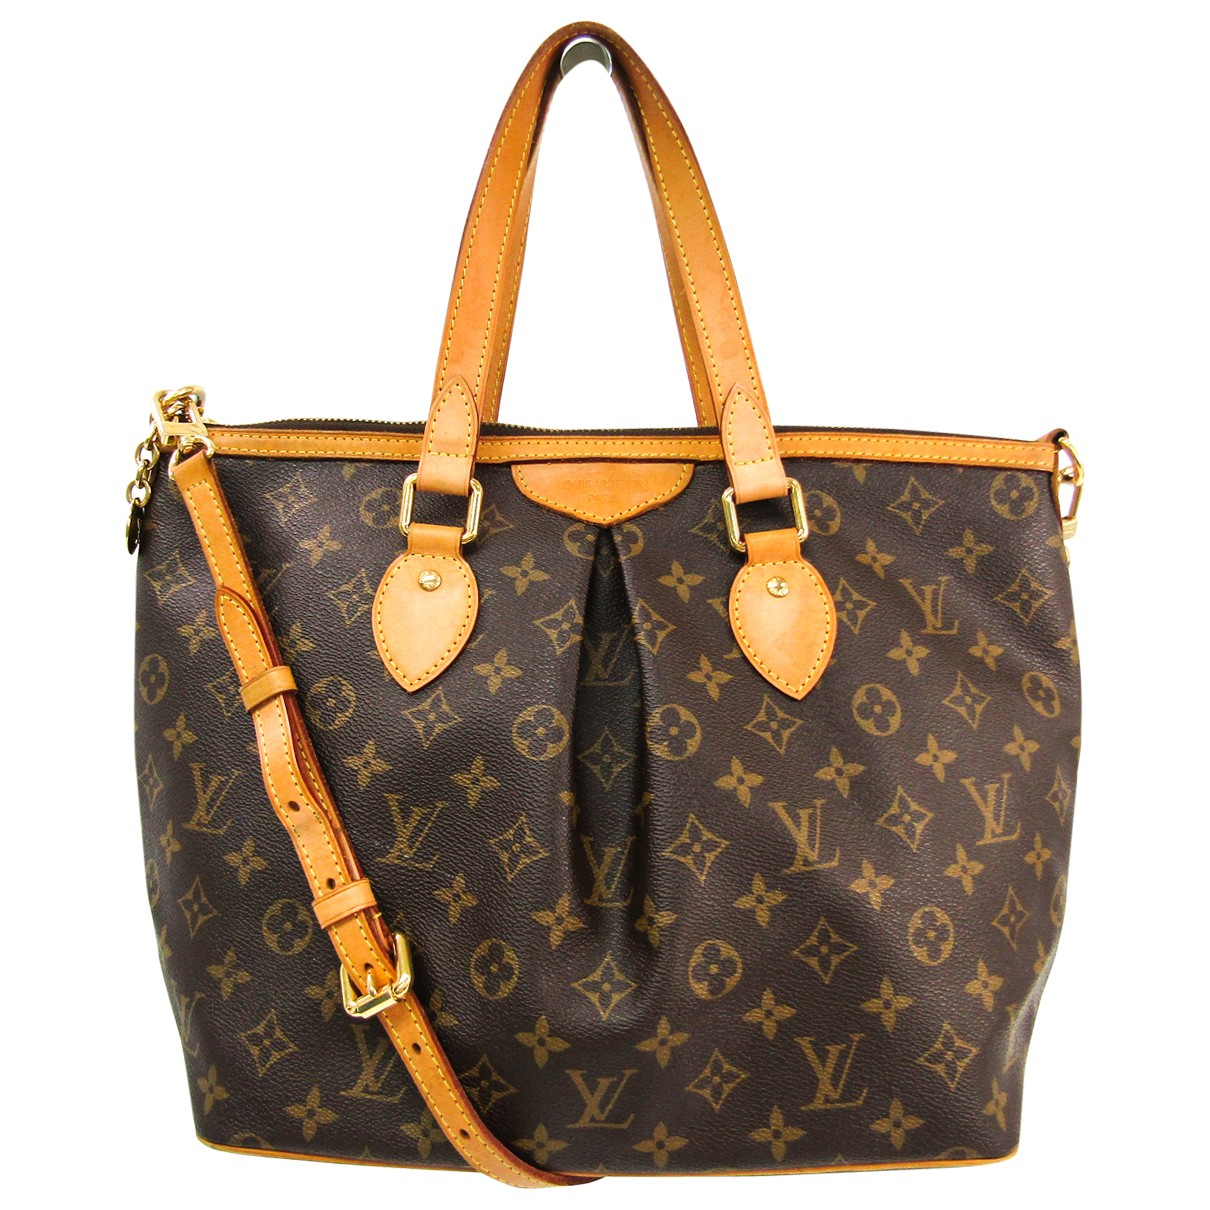 Louis Vuitton N Brown Cloth handbag for Women N